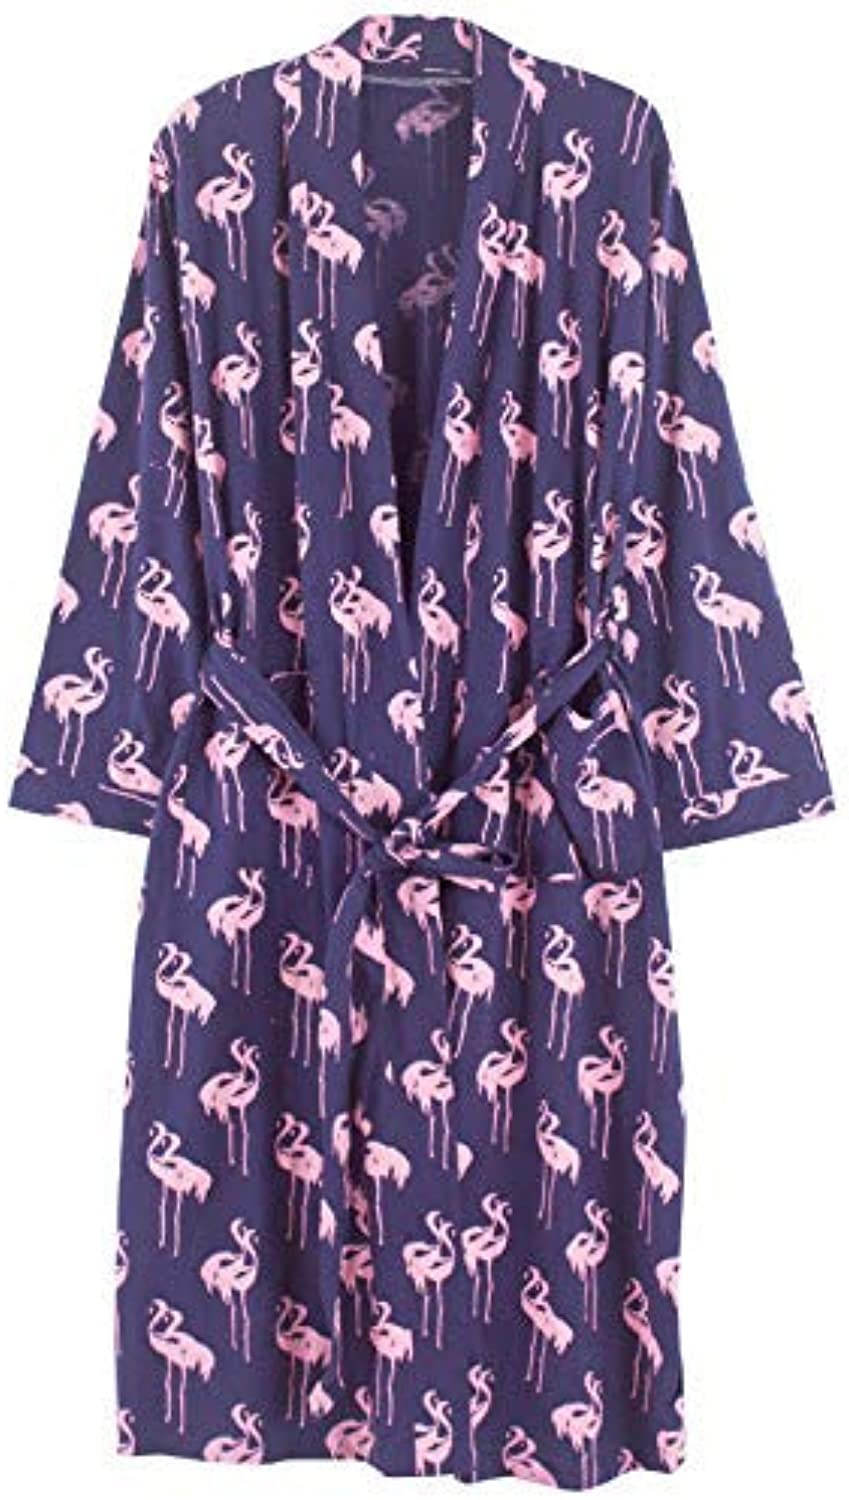 DALAI Nightgown Female Autumn Cotton LongSleeved Long Bathrobes Hotel Beauty Salon with Bathrobes Autumn and Winter Home Service (color   Purple, Size   L) (color   Purple, Size   Large)